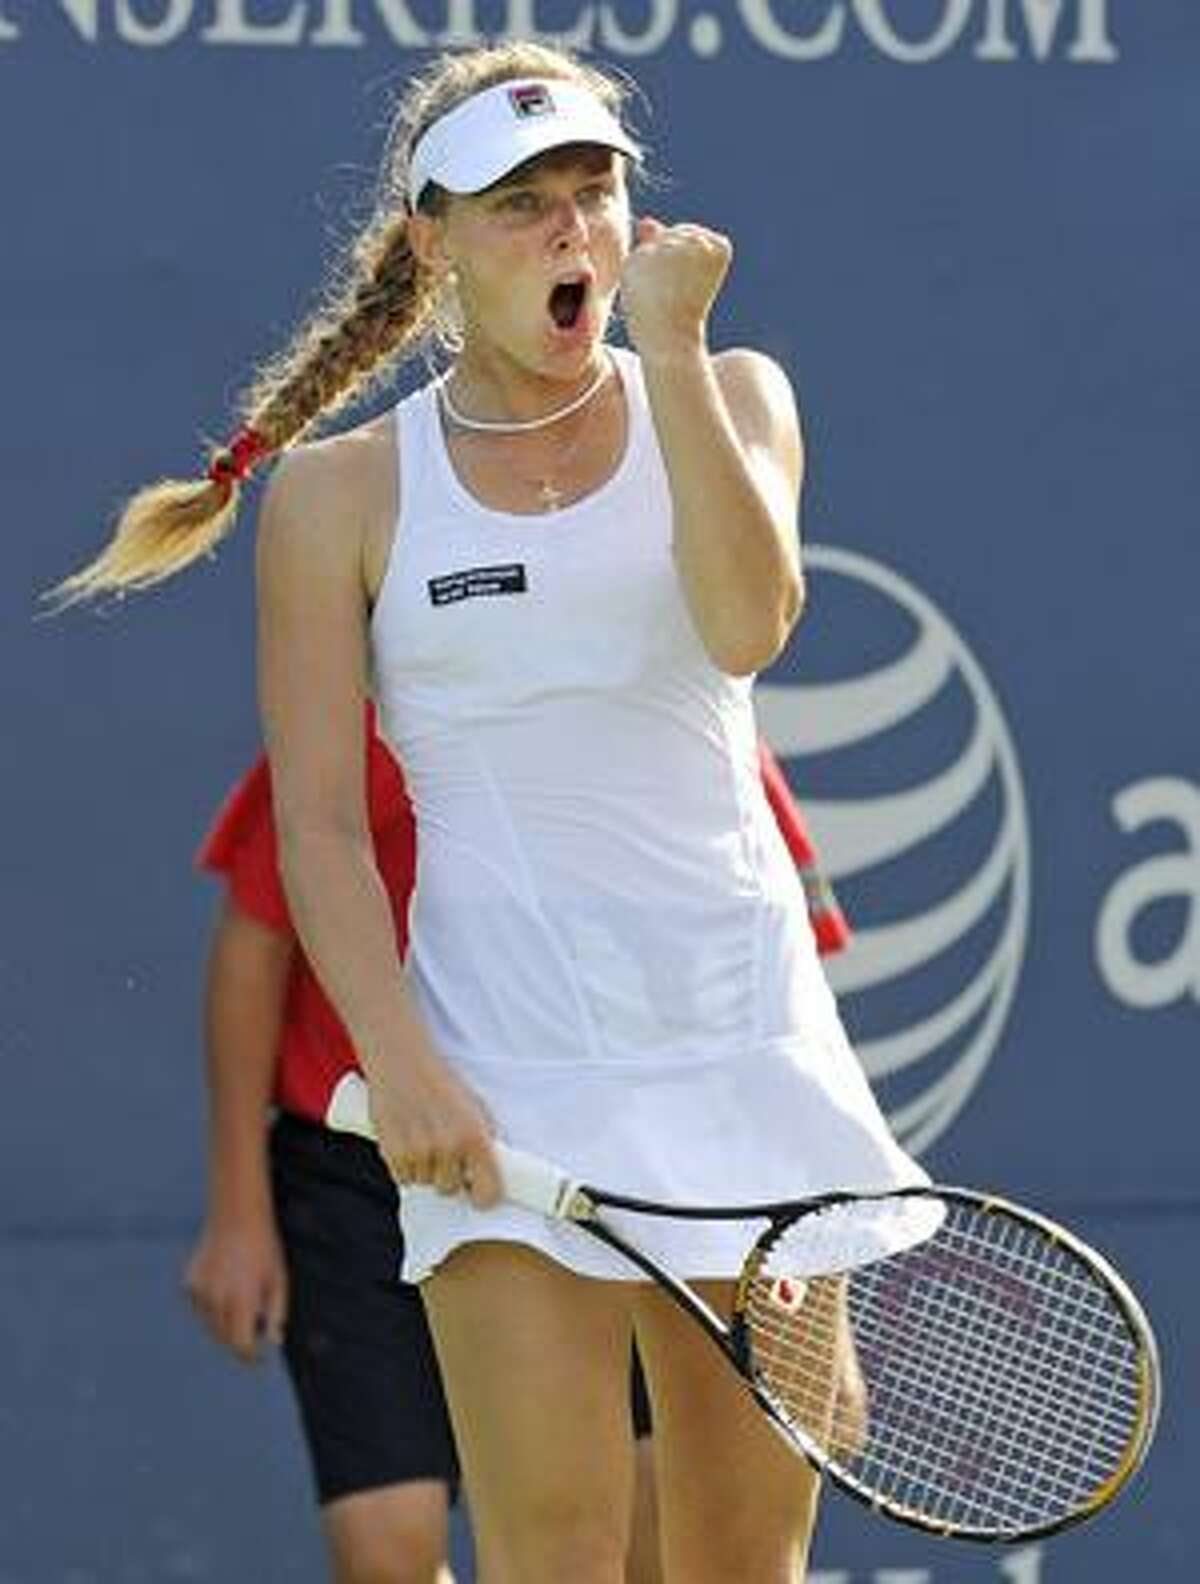 AP Anna Chakvetadze, of Russia, celebrates during the final game of her 0-6, 7-6(4), 6-4 upset victory over Nadia Petrova, also of Russia, in their first-round match at the Pilot Pen tennis tournament in New Haven on Sunday.